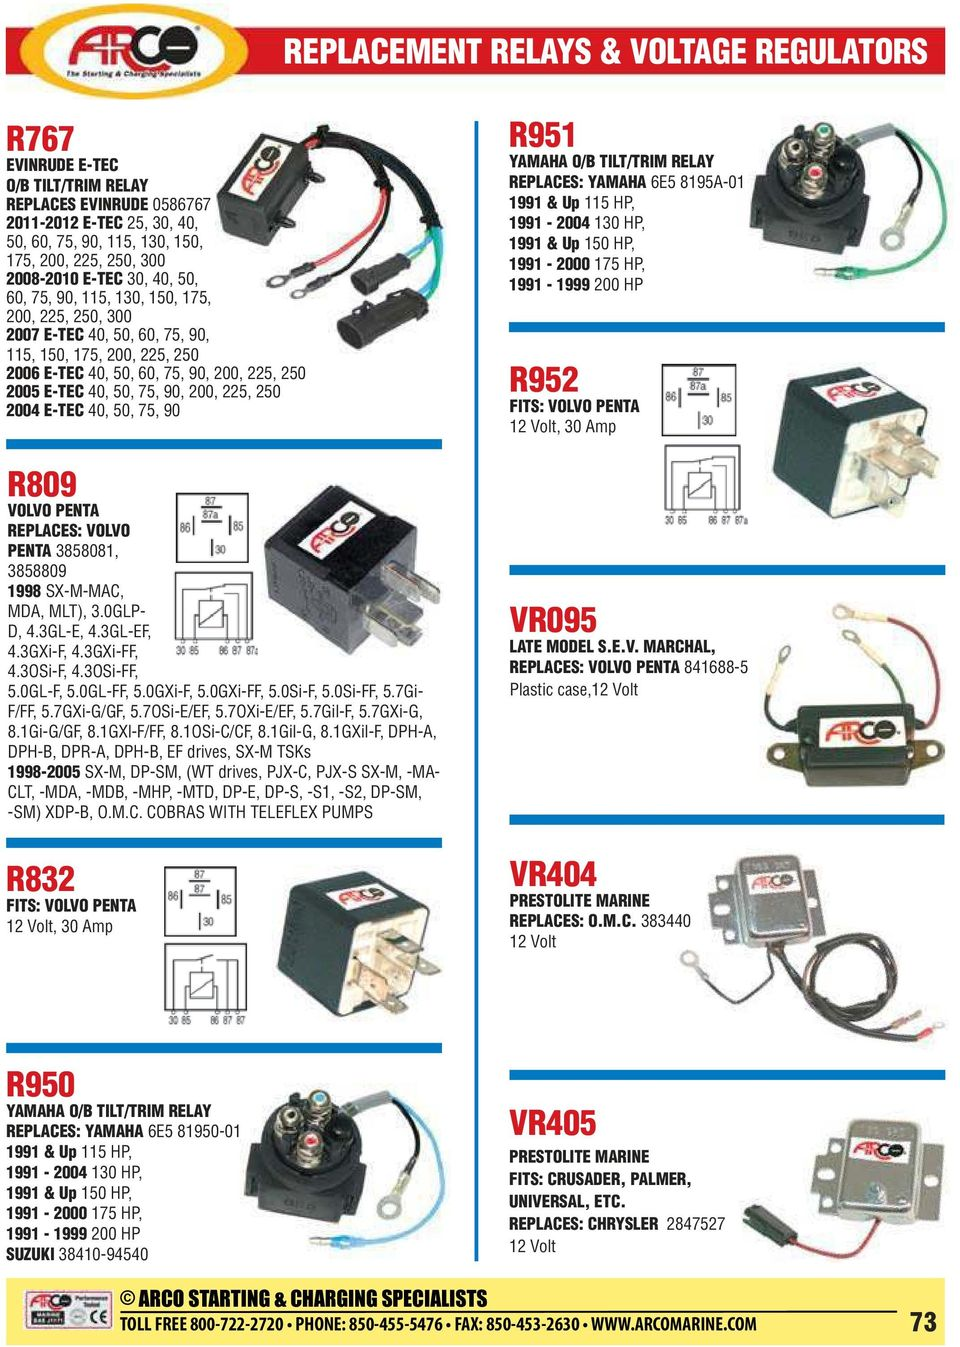 Replacement Solenoids Pdf Relay Wiring Diagram 90 380 Heavy Duty 200 225 250 2004 E Tec 40 50 75